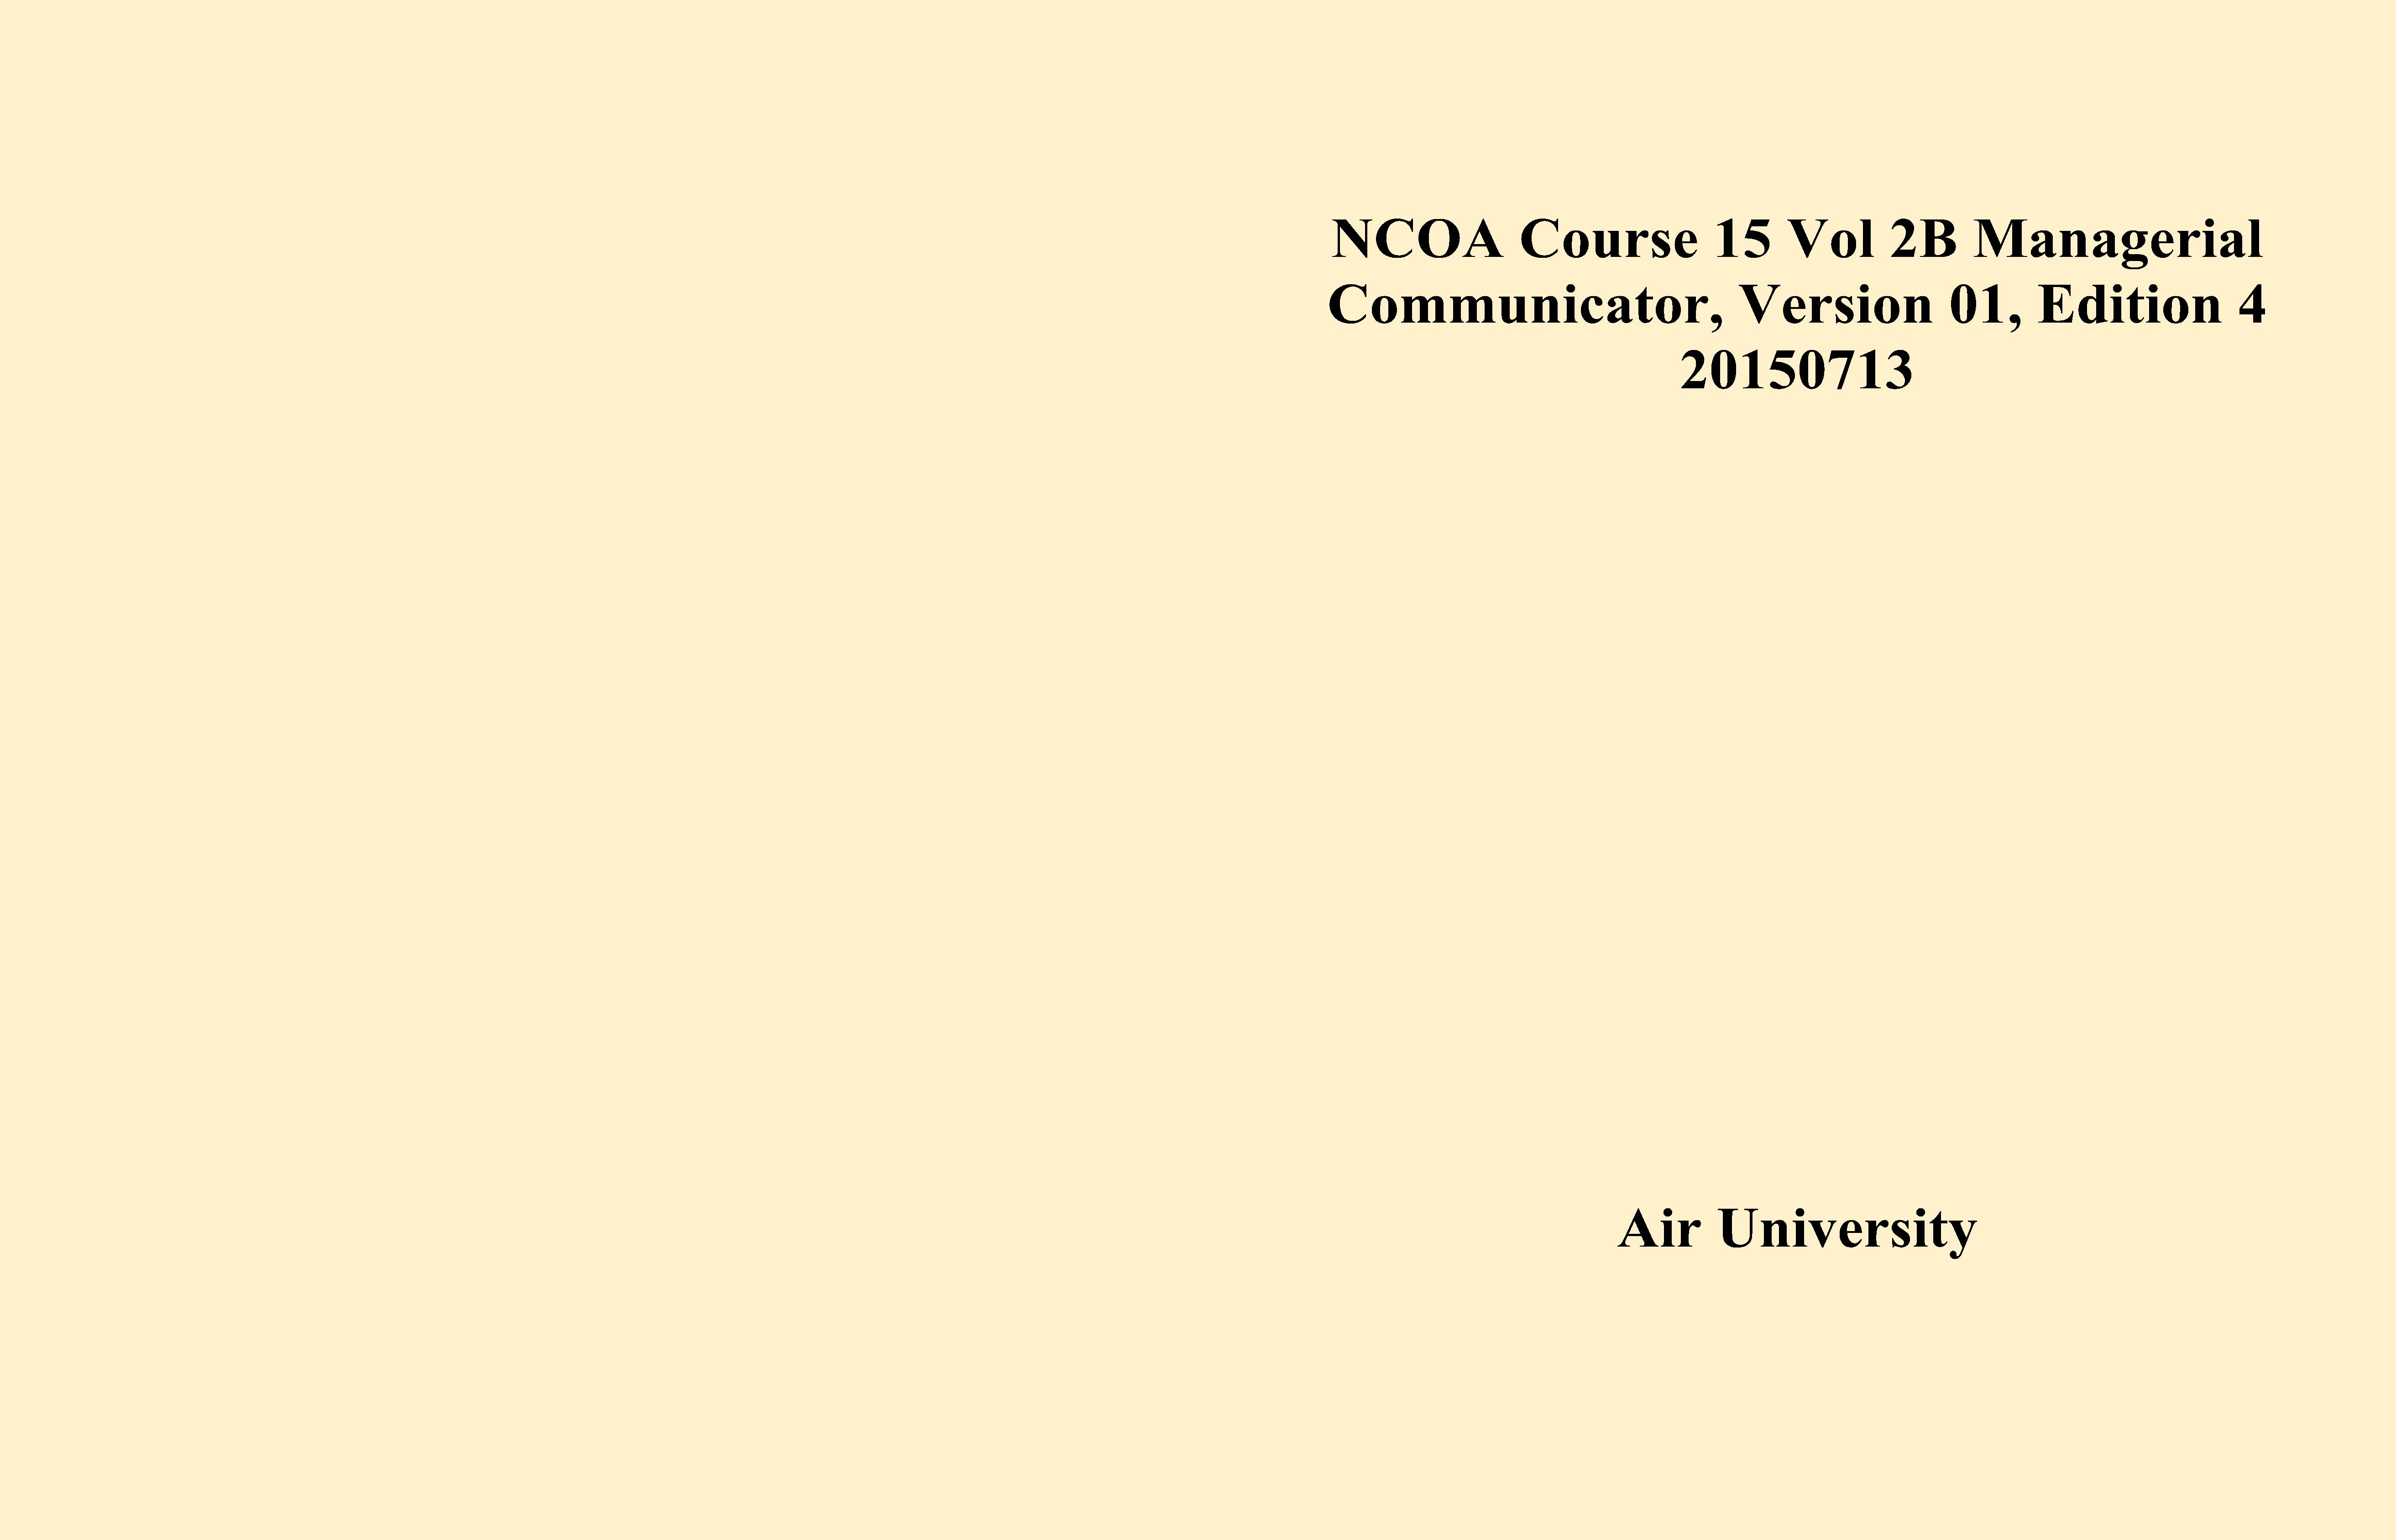 NCOA Course 15 Vol 2B Managerial Communicator, Version 01, Edition 4 20150713 cover image